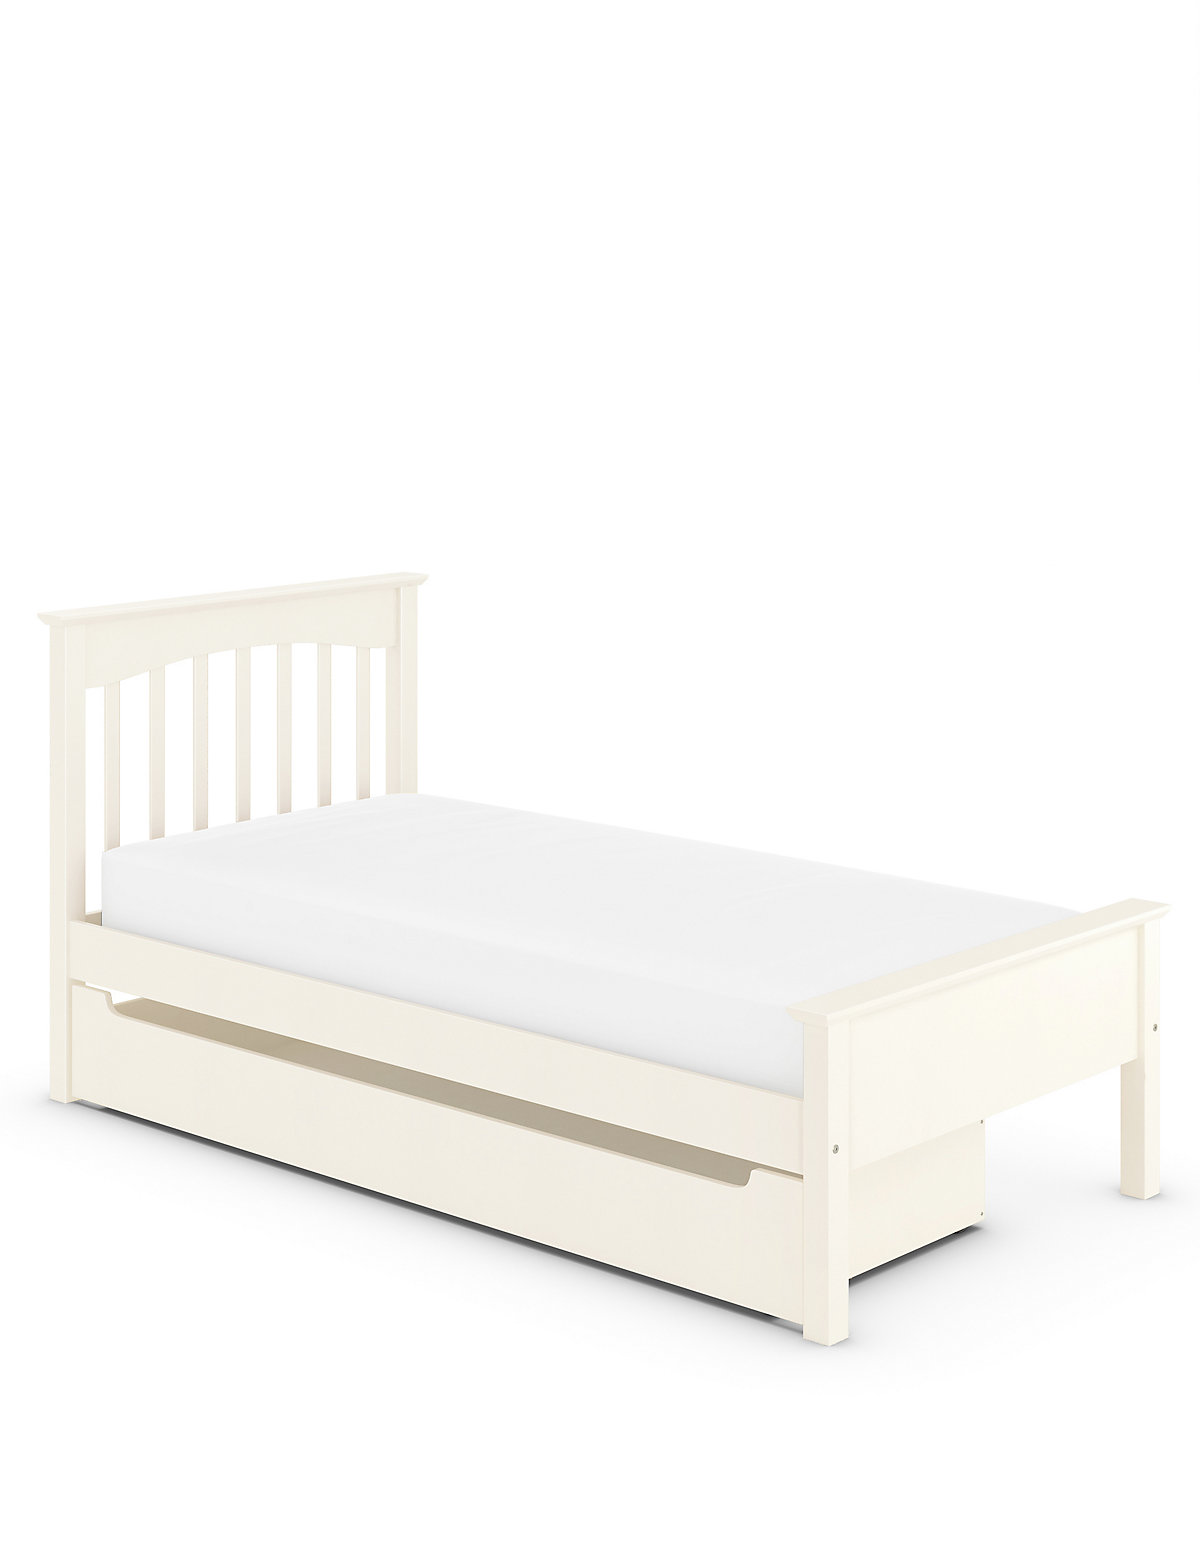 Buy Cheap Childrens Bed With Storage